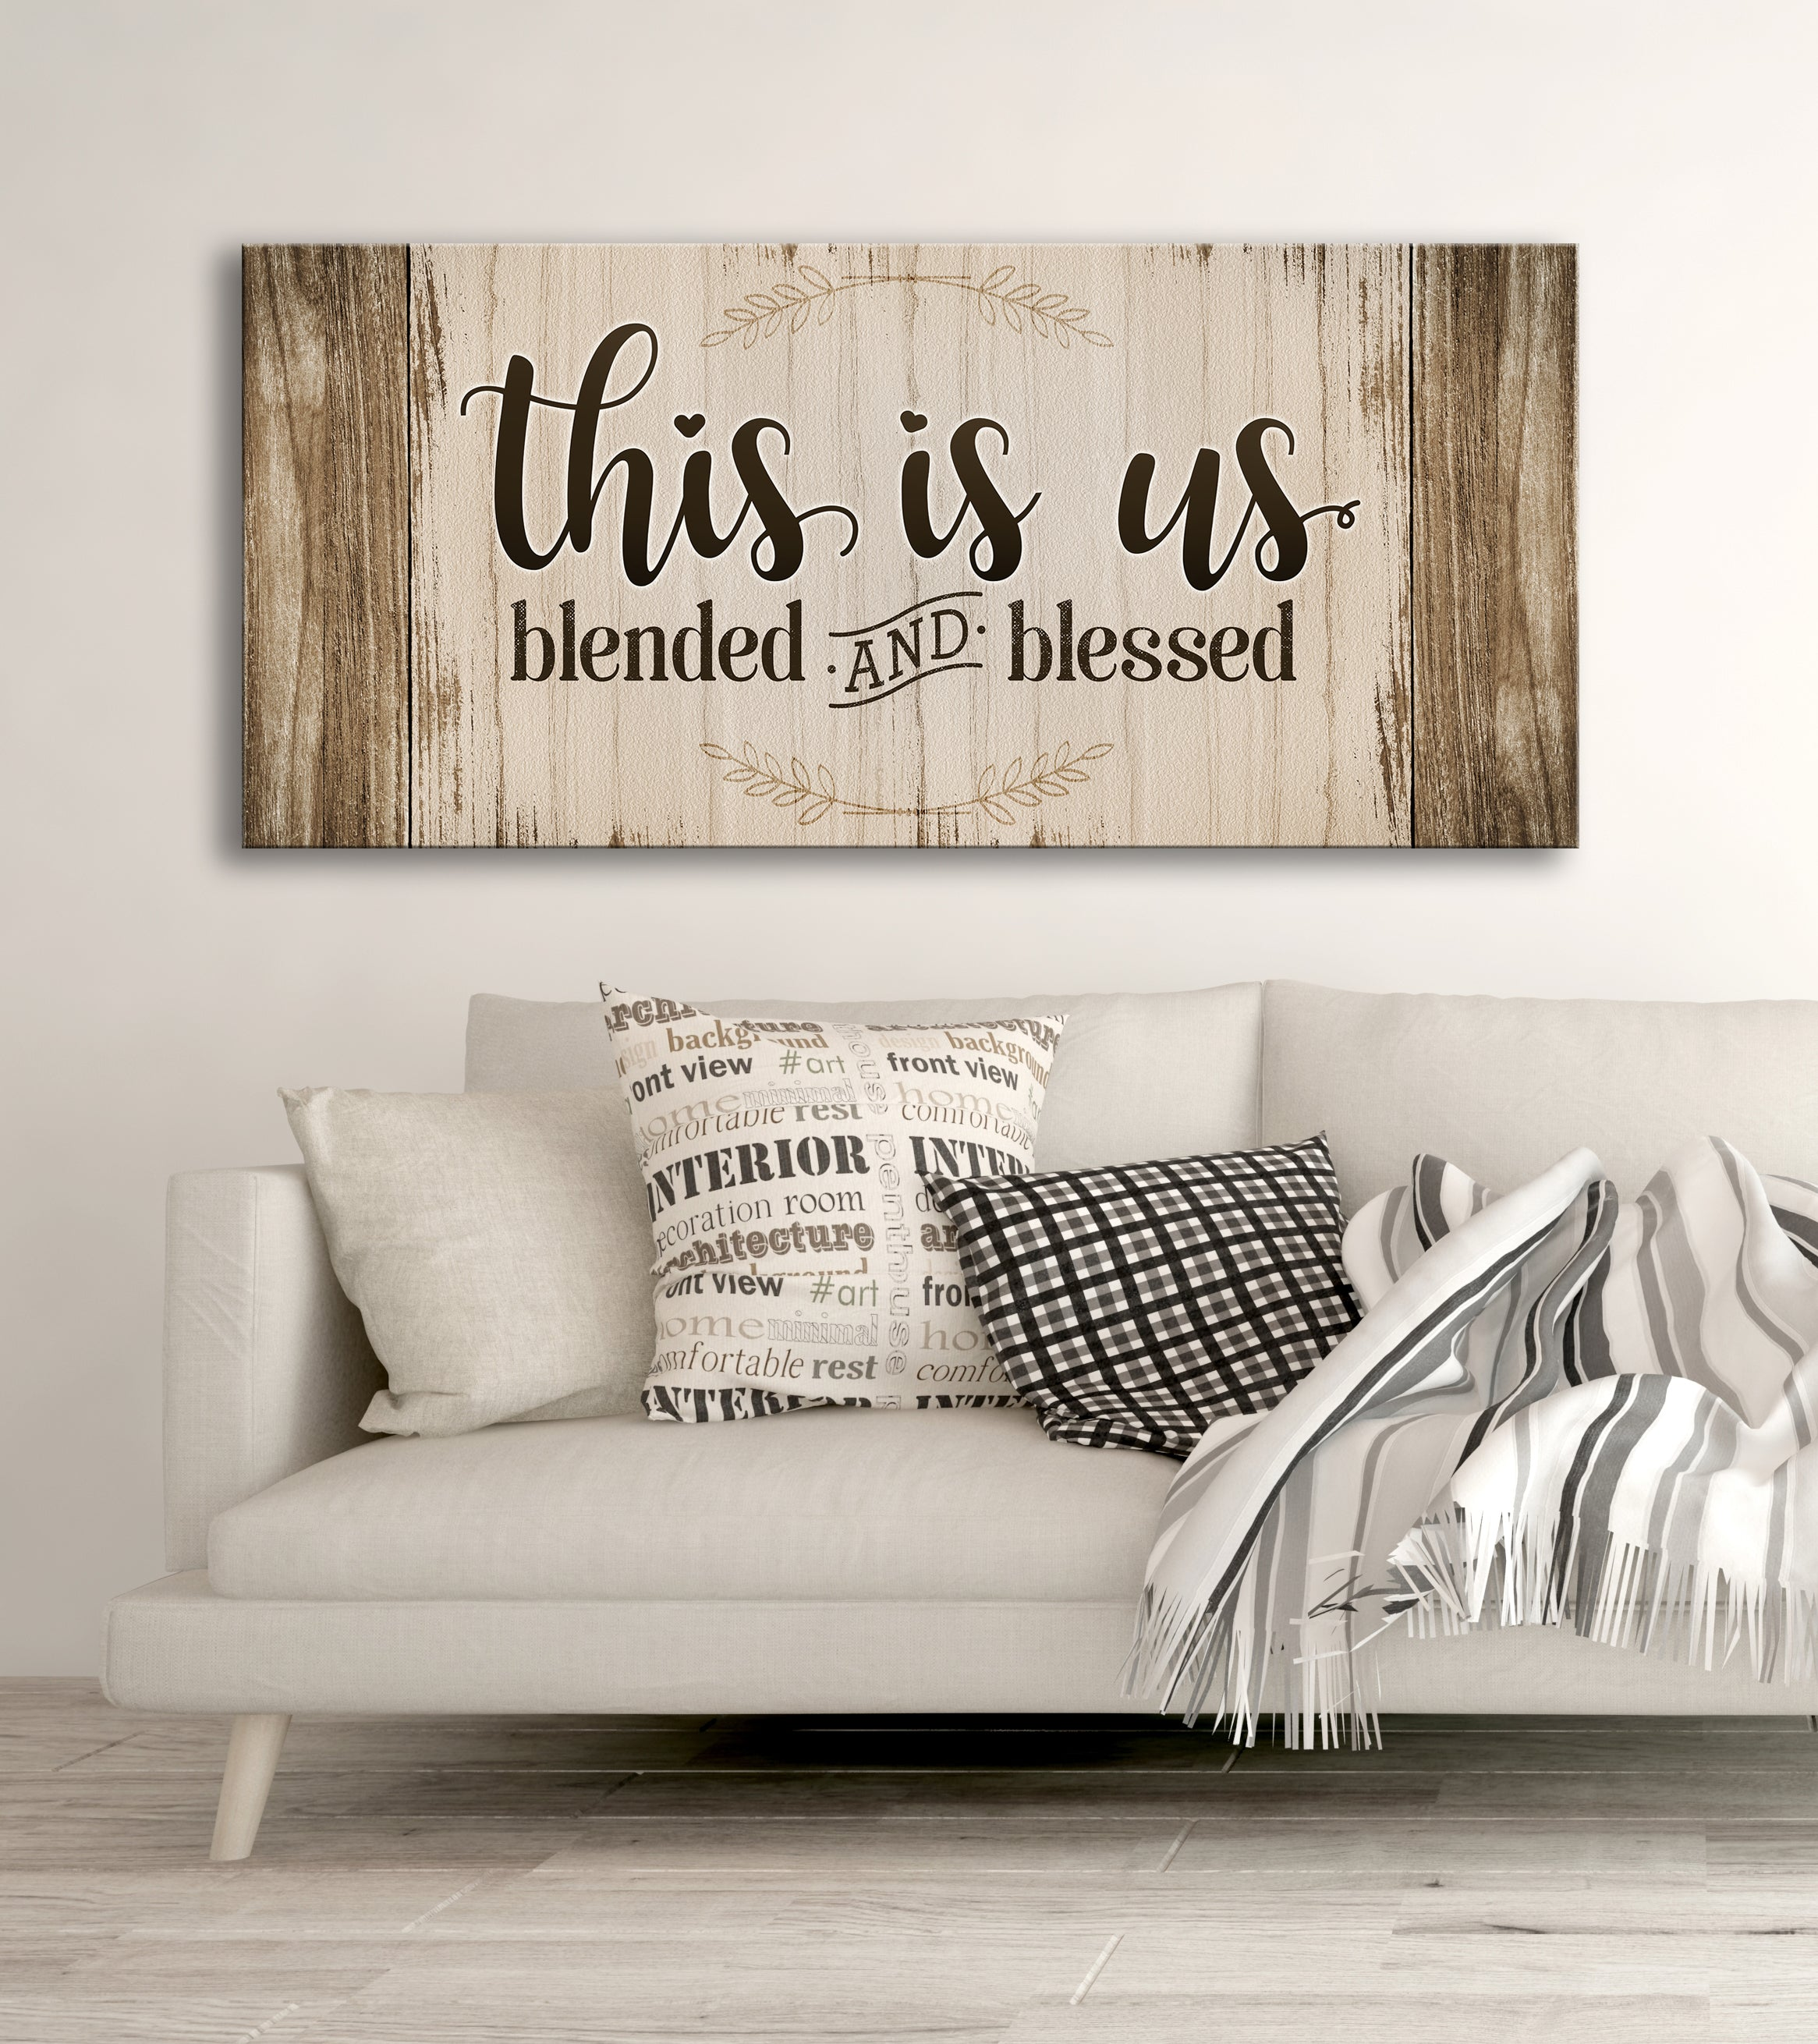 BLENDED AND BLESSED ELEGANT GIFT SHABBY CHIC SIGN THIS IS US